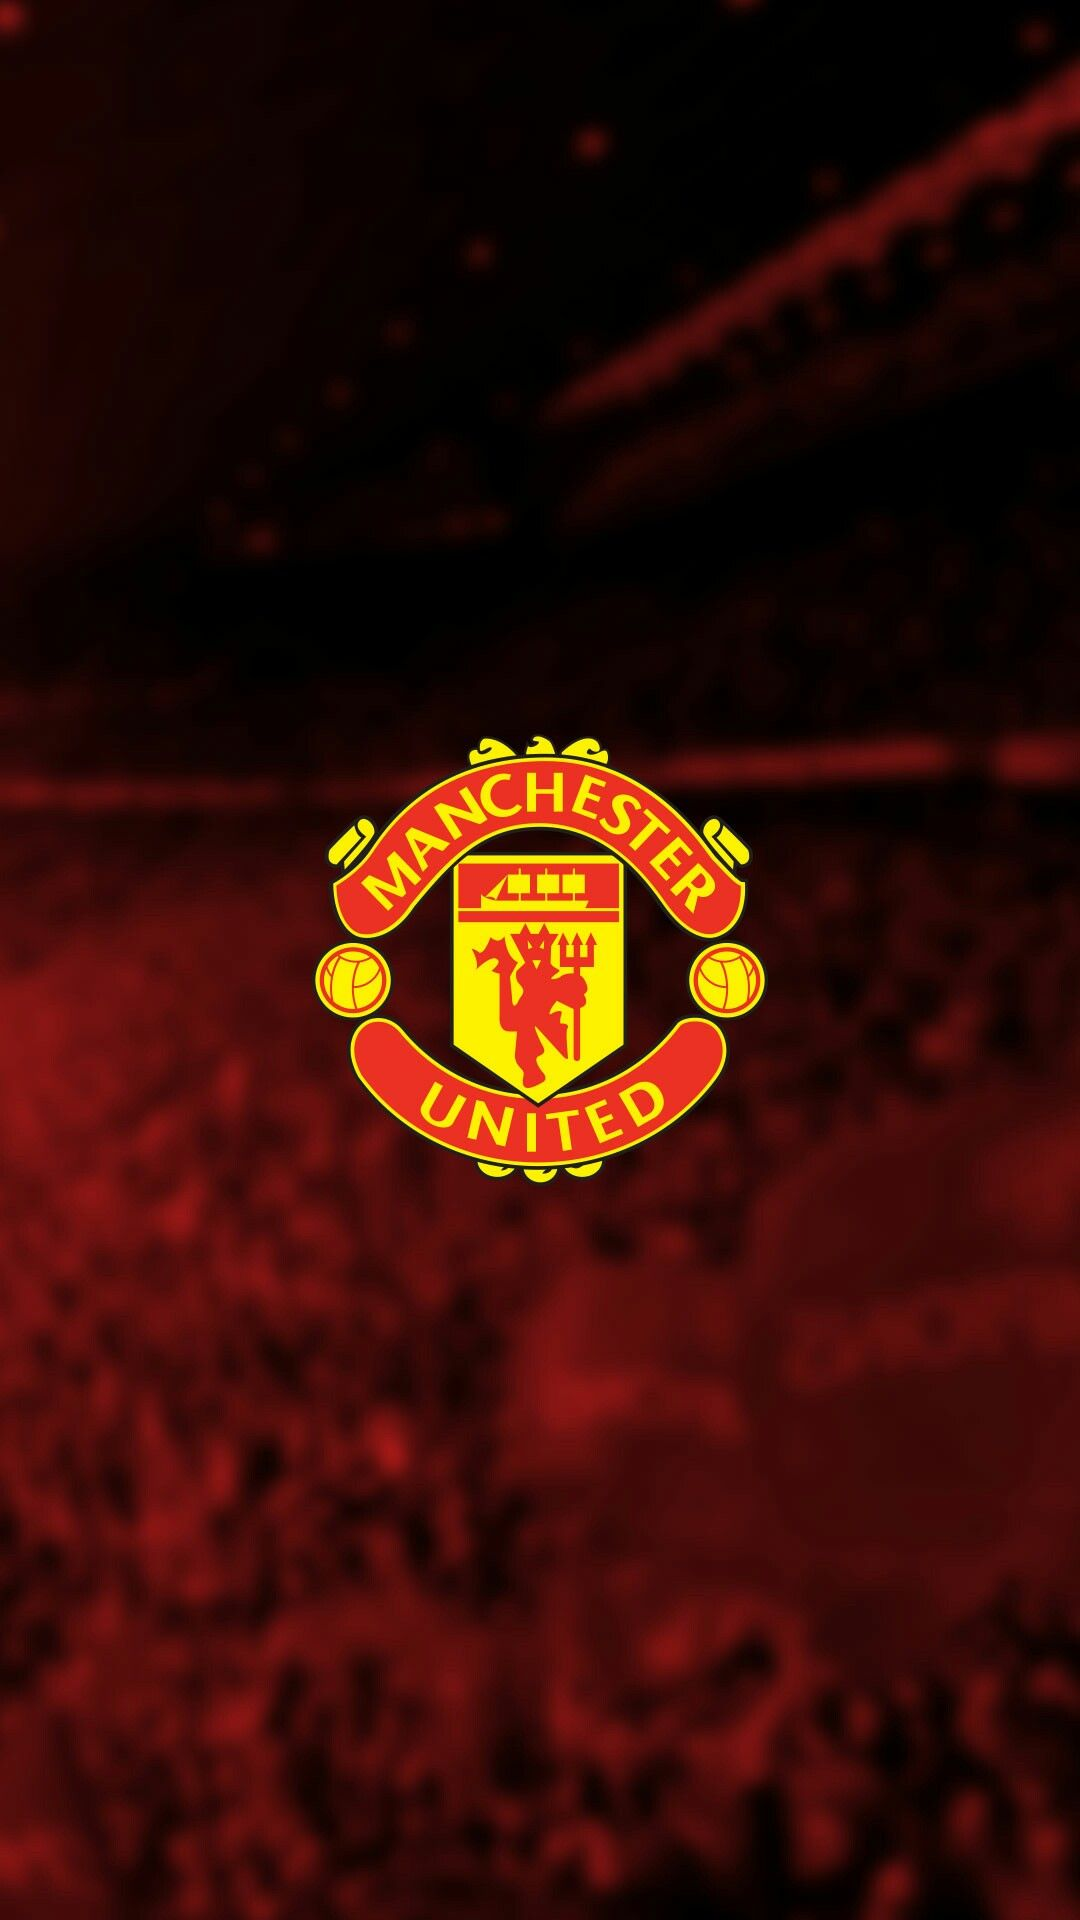 Manchester United Football Club Wallpaper HD